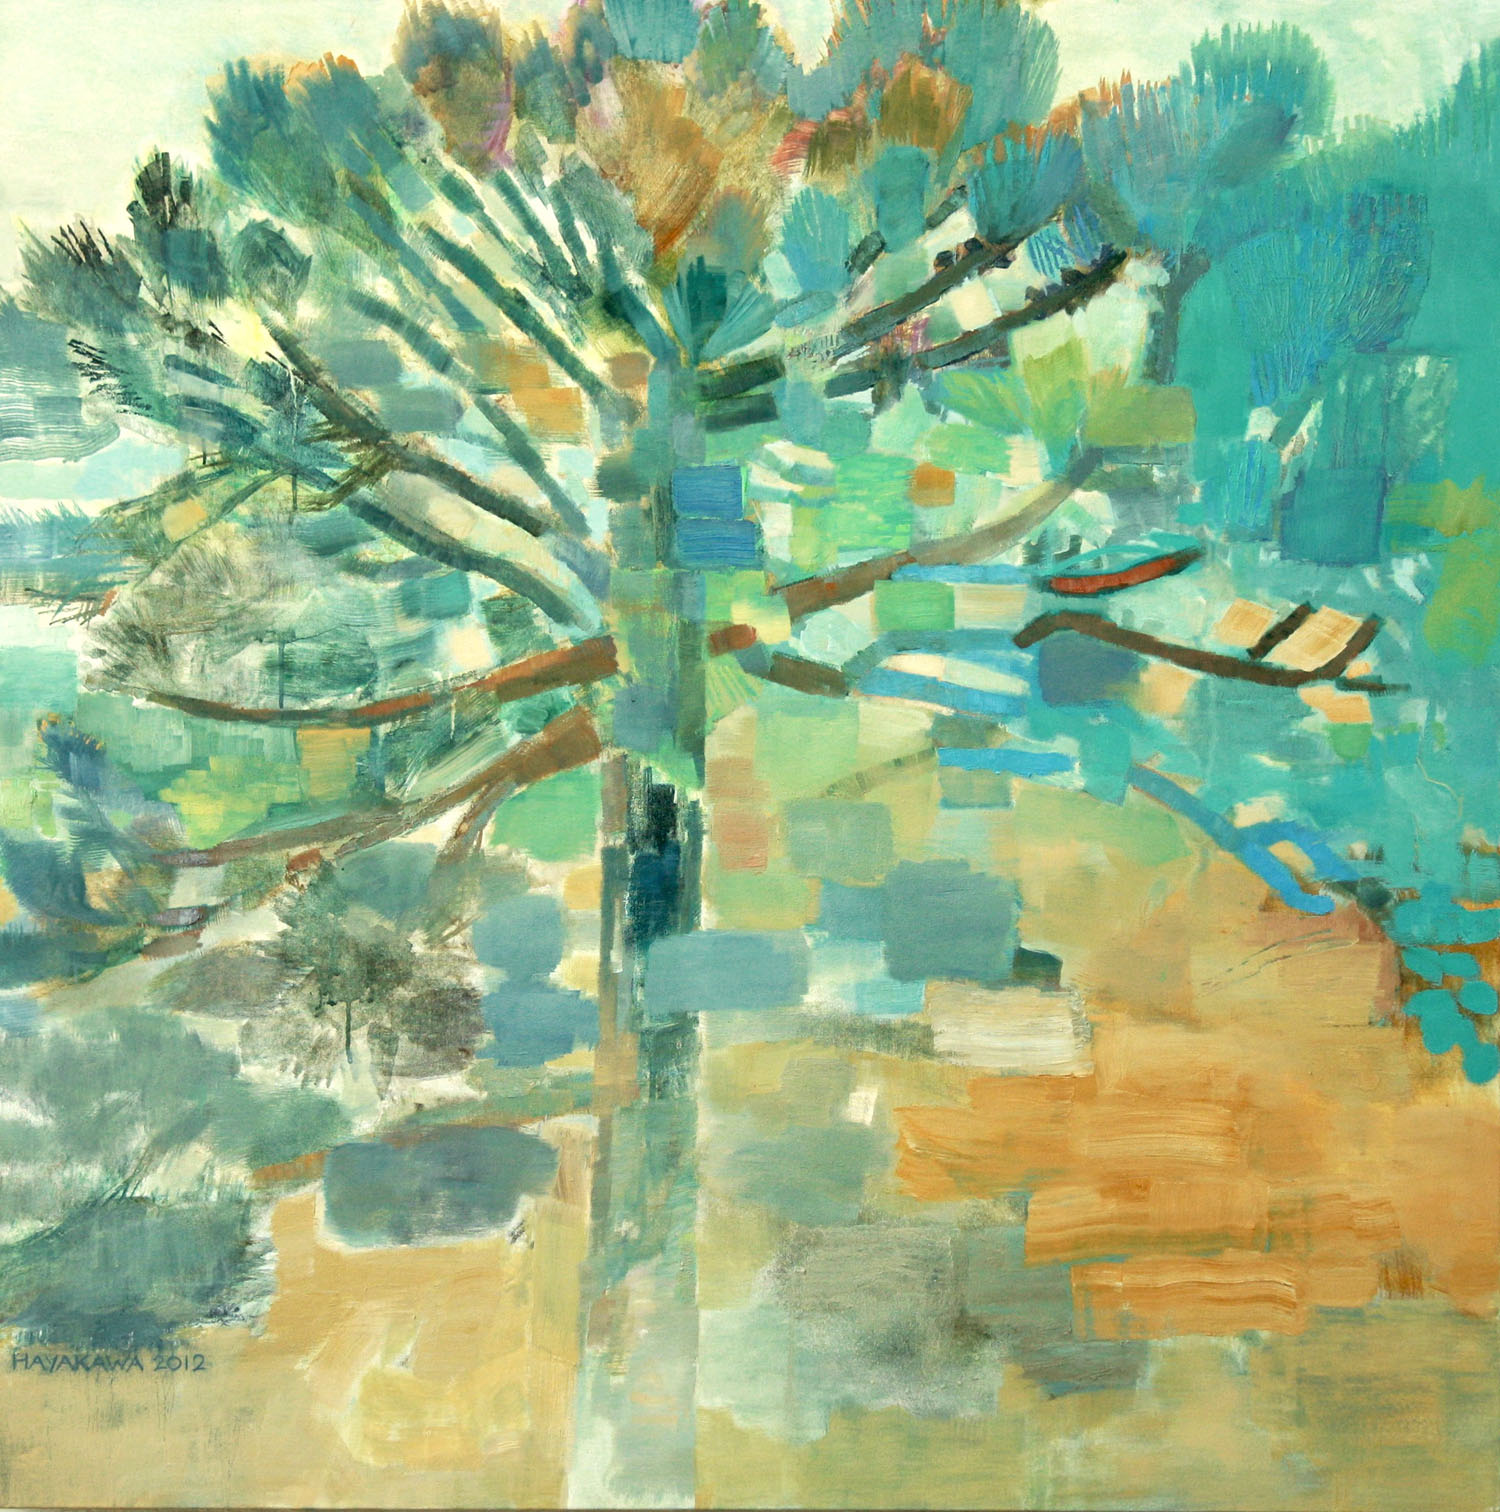 NEAR THE LAKE  •  oil on canvas  •  40 by 40 inches  •  2012